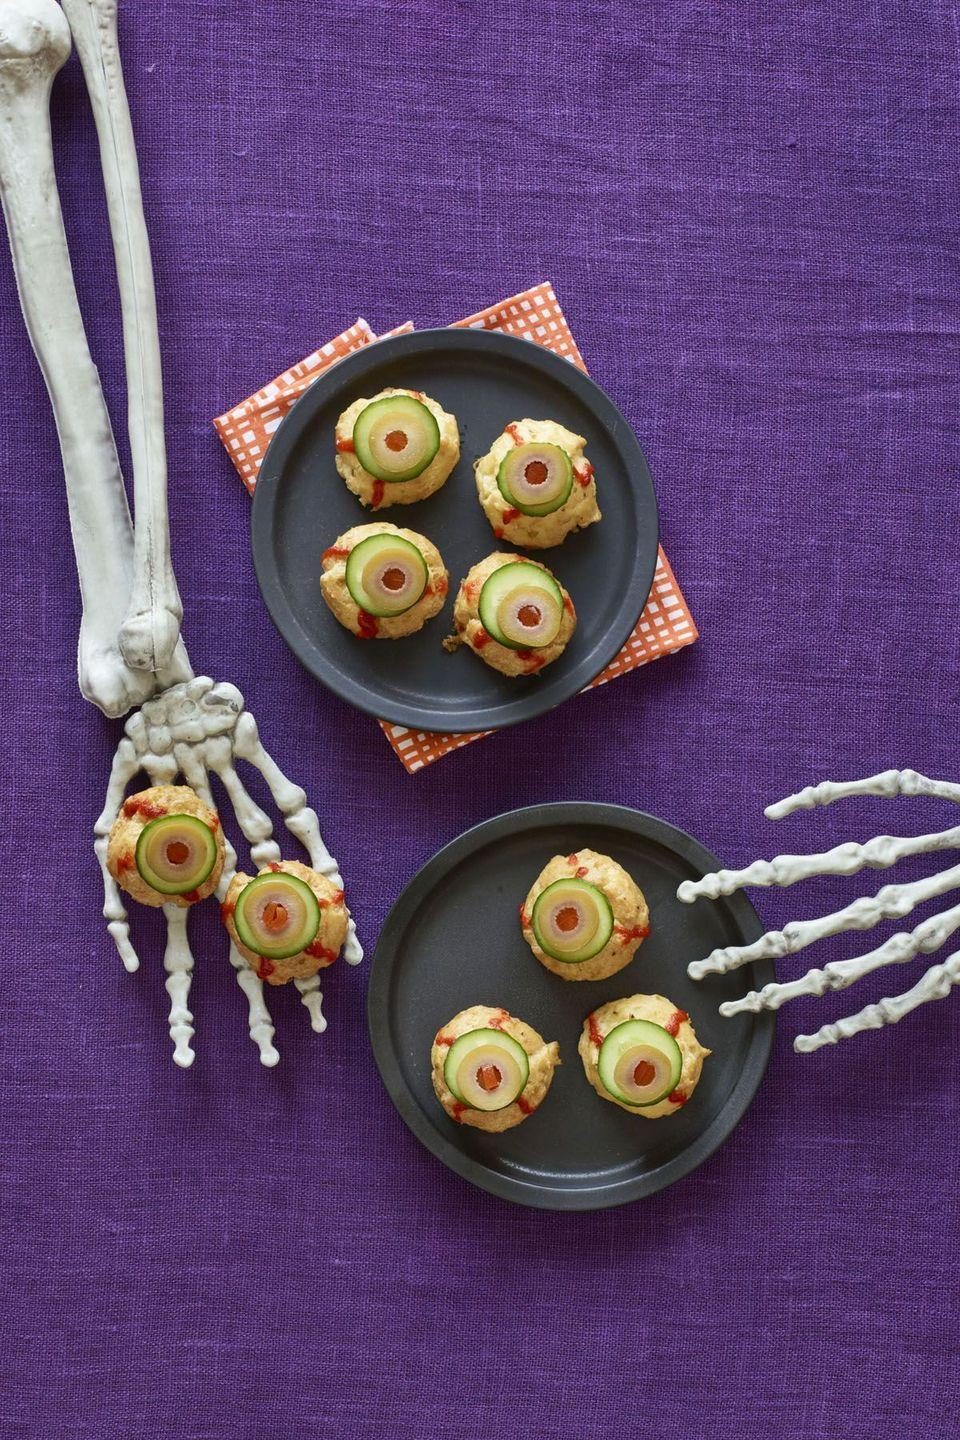 """<p>These cheesy puff pastries, which only call for four ingredients, will be gone in the blink of an eye.</p><p><strong><em><a href=""""https://www.womansday.com/food-recipes/recipes/a60165/bitesize-eyeballs-recipe/"""" rel=""""nofollow noopener"""" target=""""_blank"""" data-ylk=""""slk:Get the Bite-Size Eyeballs recipe."""" class=""""link rapid-noclick-resp"""">Get the Bite-Size Eyeballs recipe. </a></em></strong></p>"""